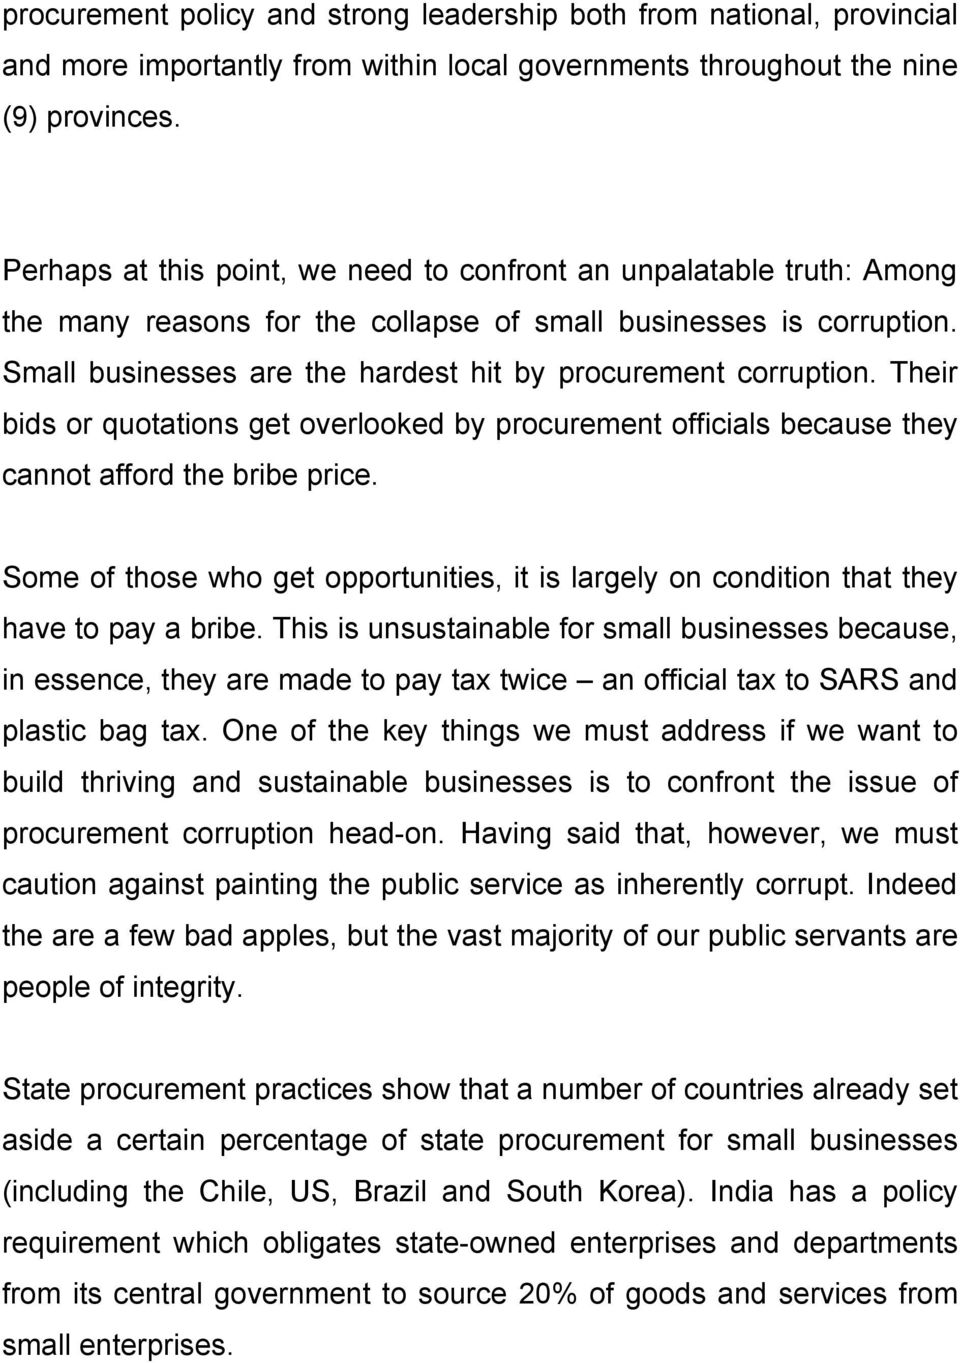 Small businesses are the hardest hit by procurement corruption. Their bids or quotations get overlooked by procurement officials because they cannot afford the bribe price.